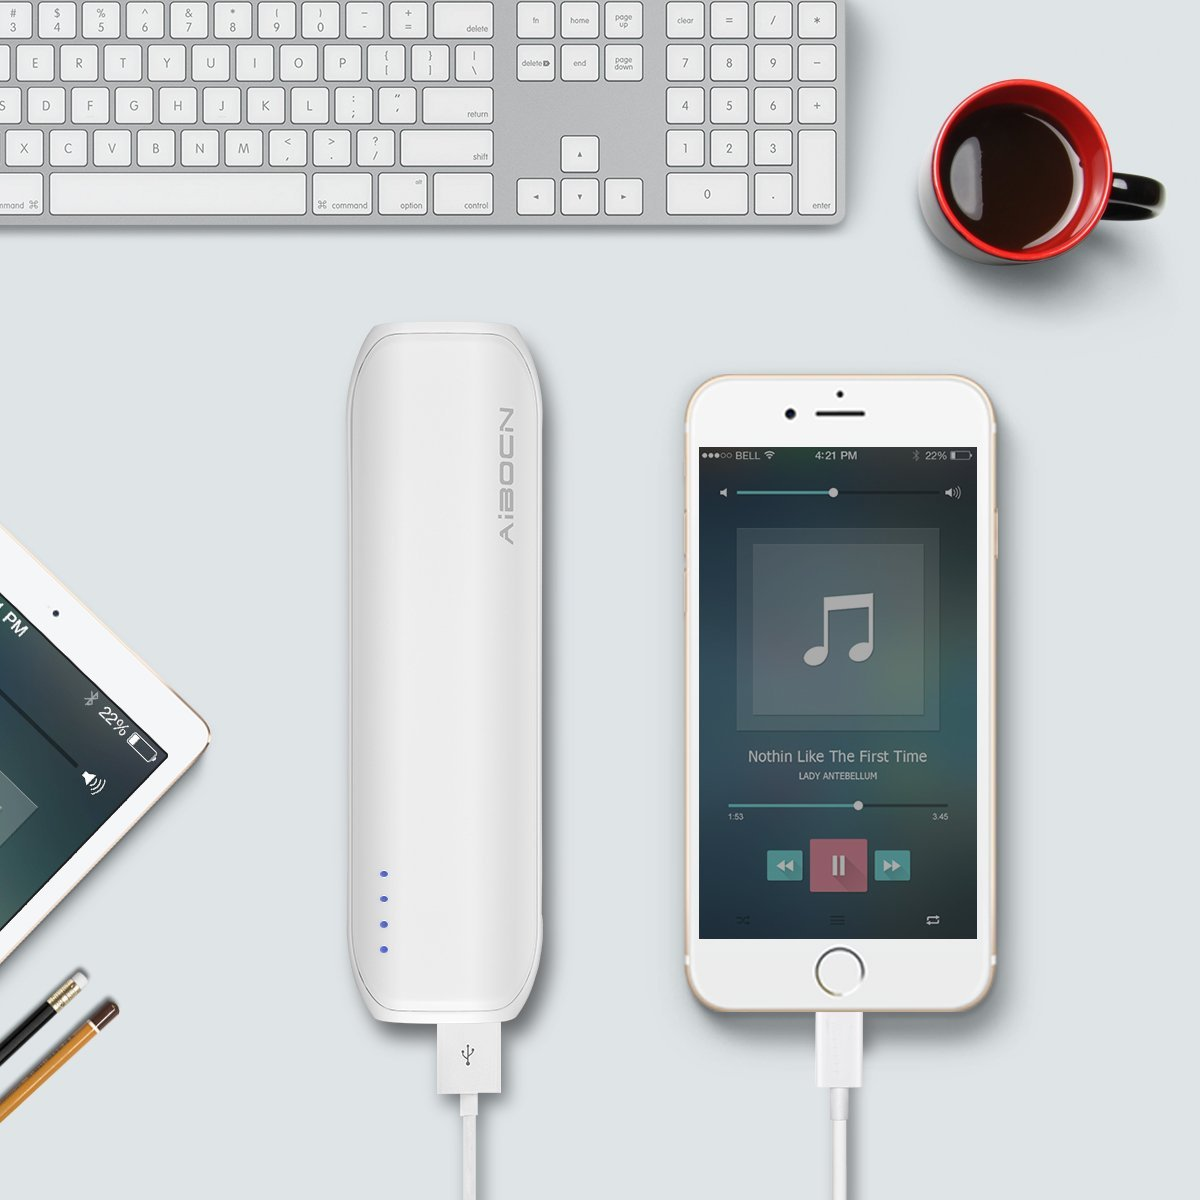 Pocket Sized Power Bank Mini Portable Charger White Color